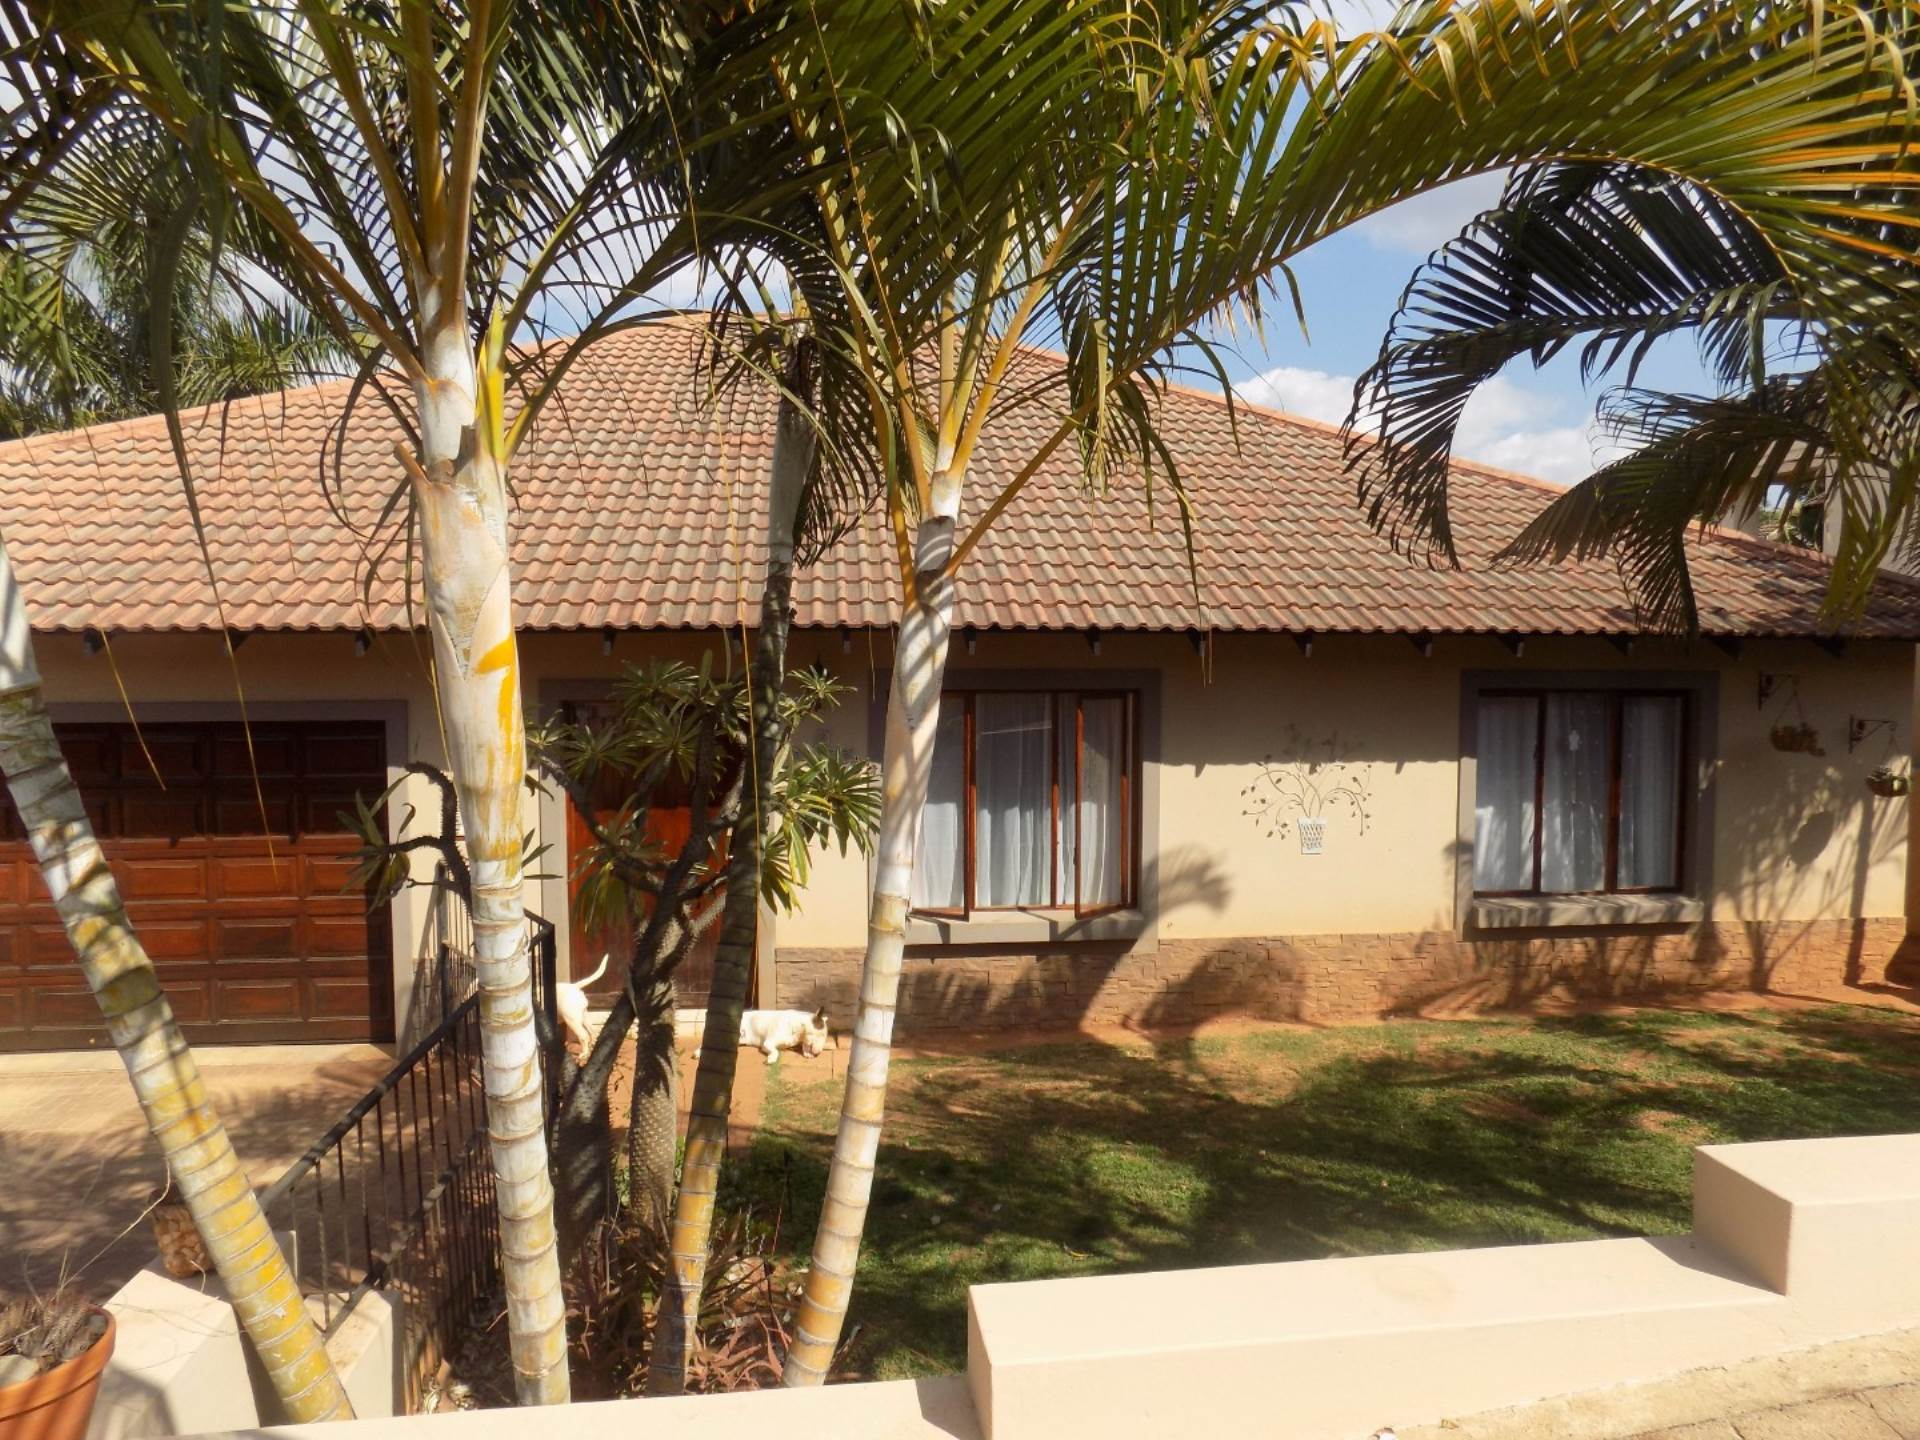 3 BedroomHouse For Sale In Tzangeni